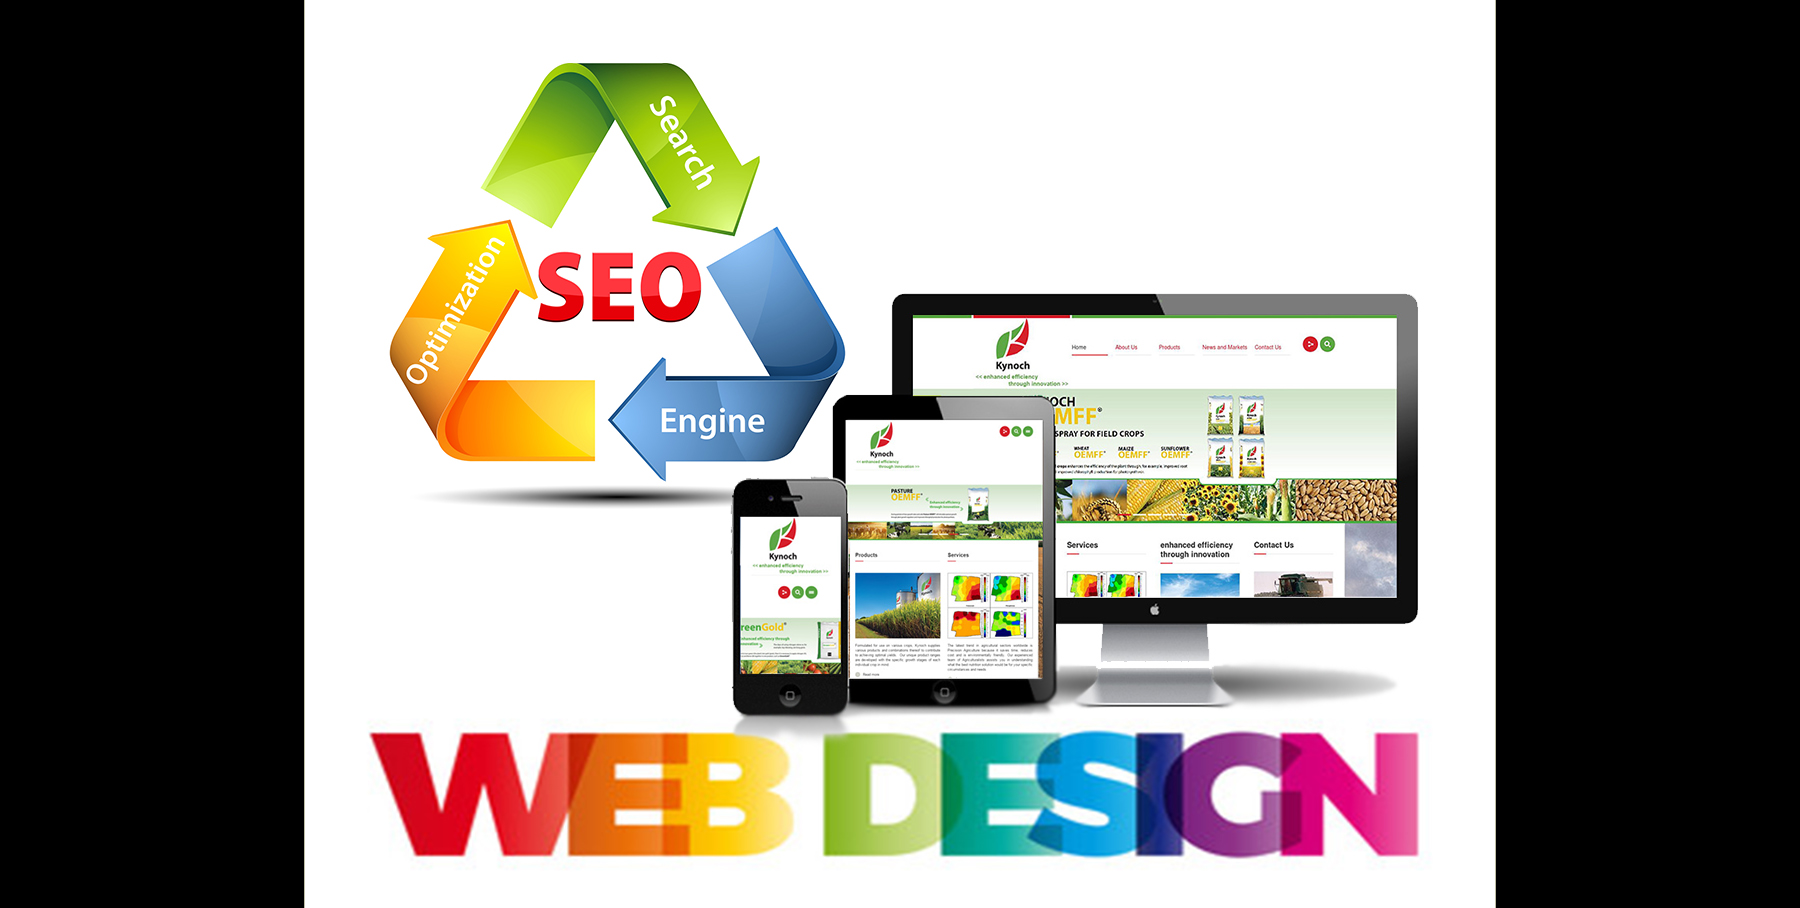 To register 3 Domains For SEO Improvement